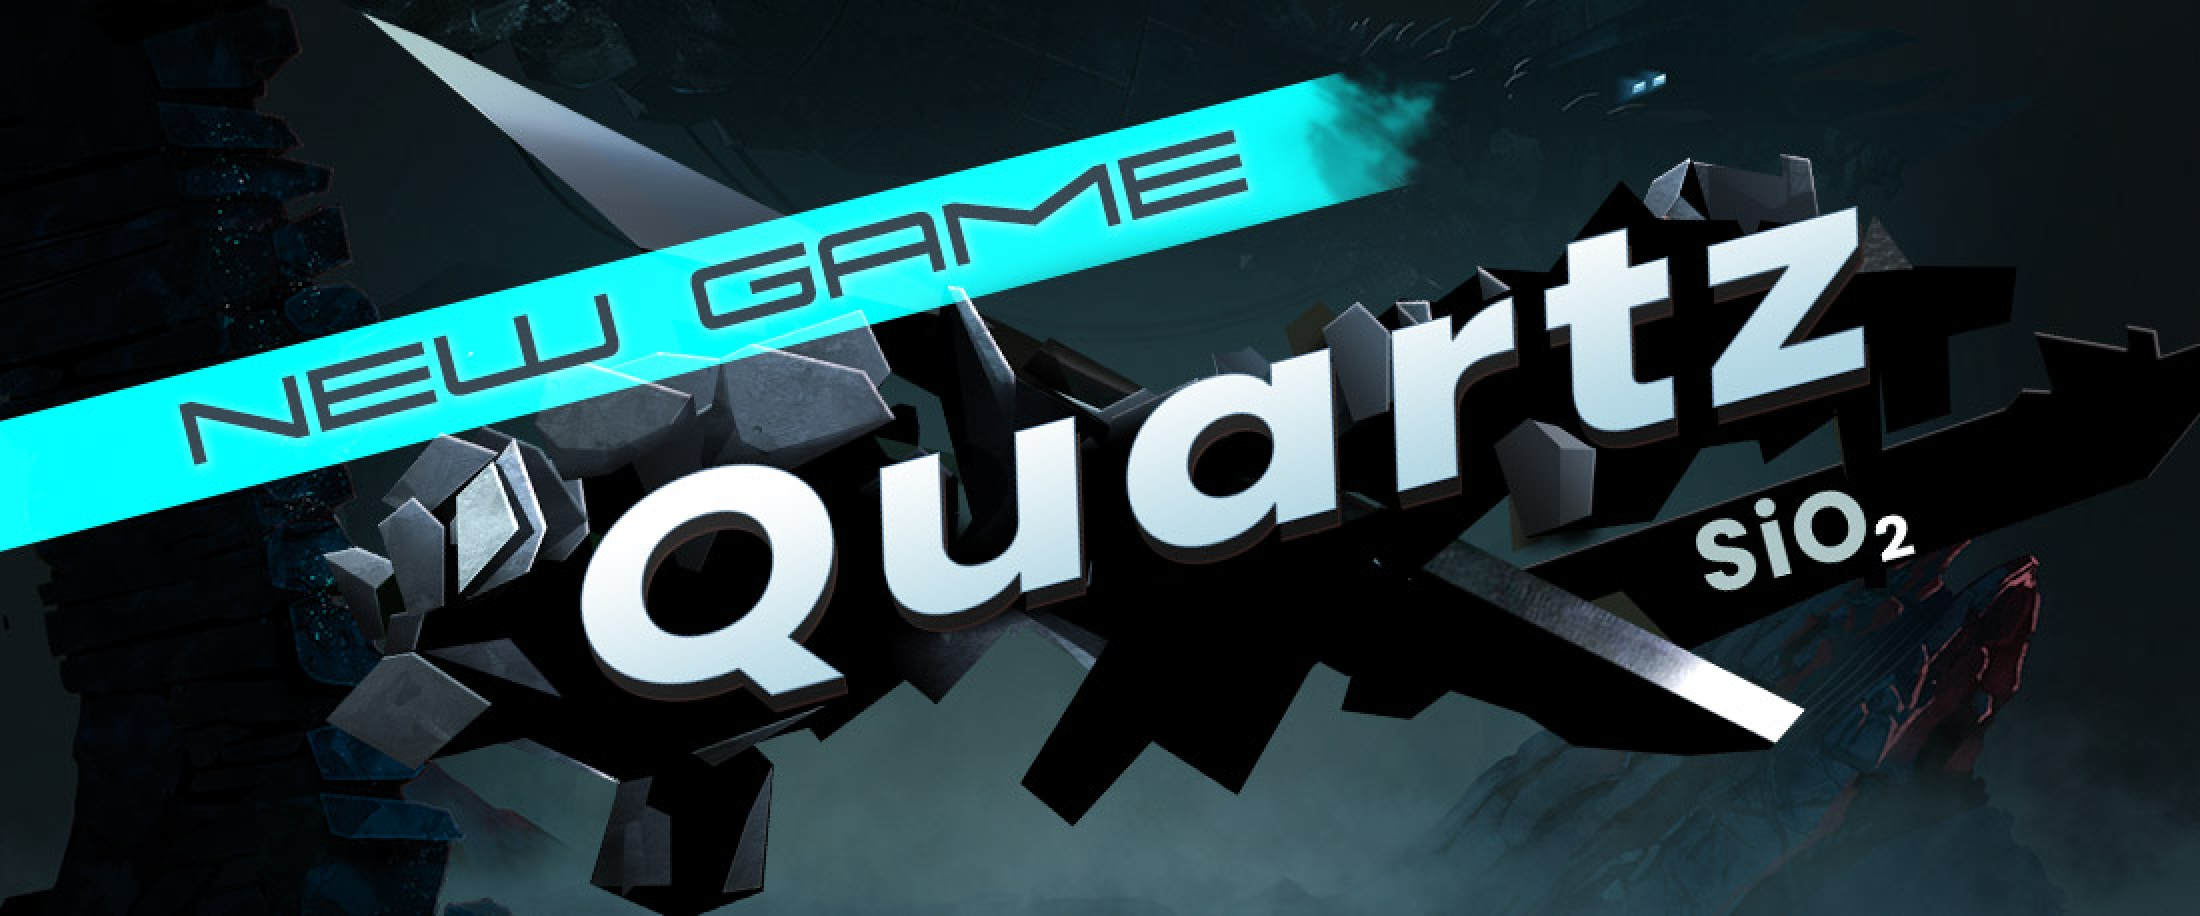 Quartz SiO2 Online Slot Demo Game by Lady Luck Games